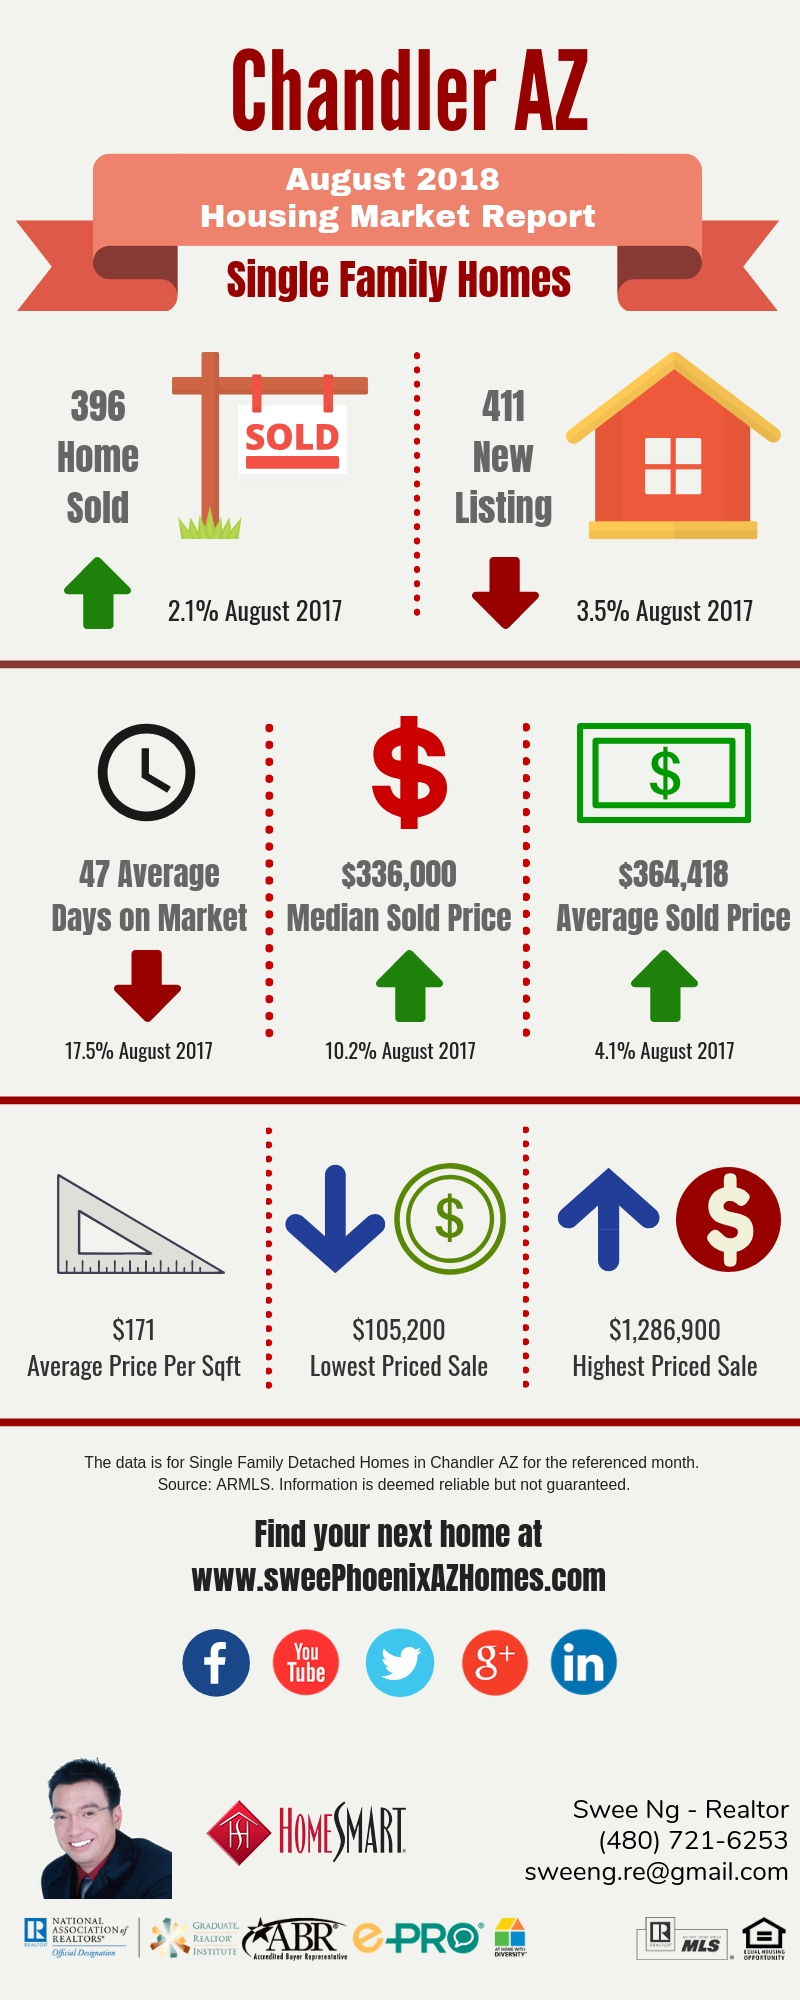 Chandler AZ Housing Market Update August 2018 by Swee Ng, House Value and Real Estate Listings